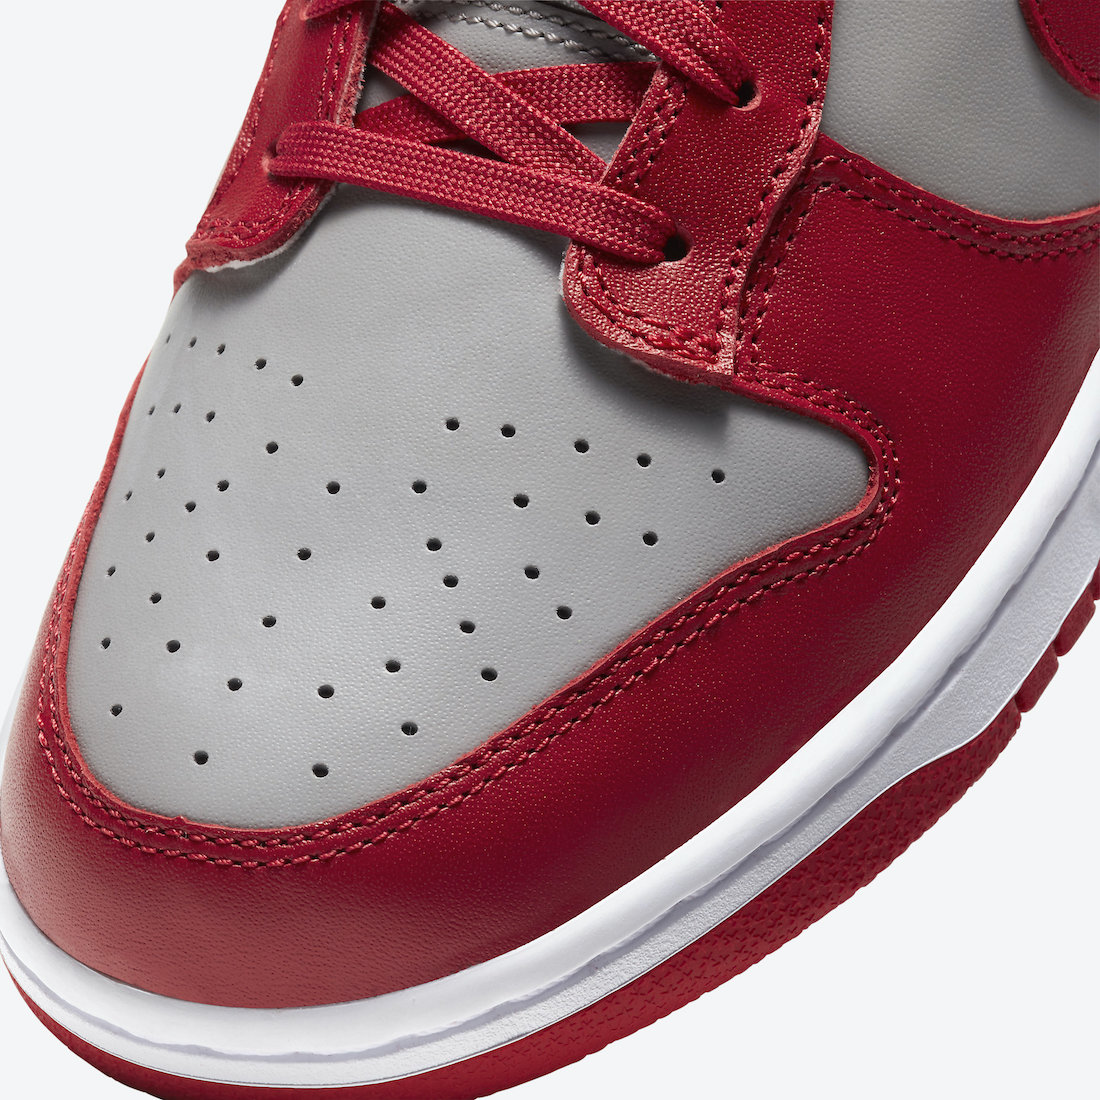 Nike-Dunk-Low-UNLV-DD1391-002-Release-Date-Price-6